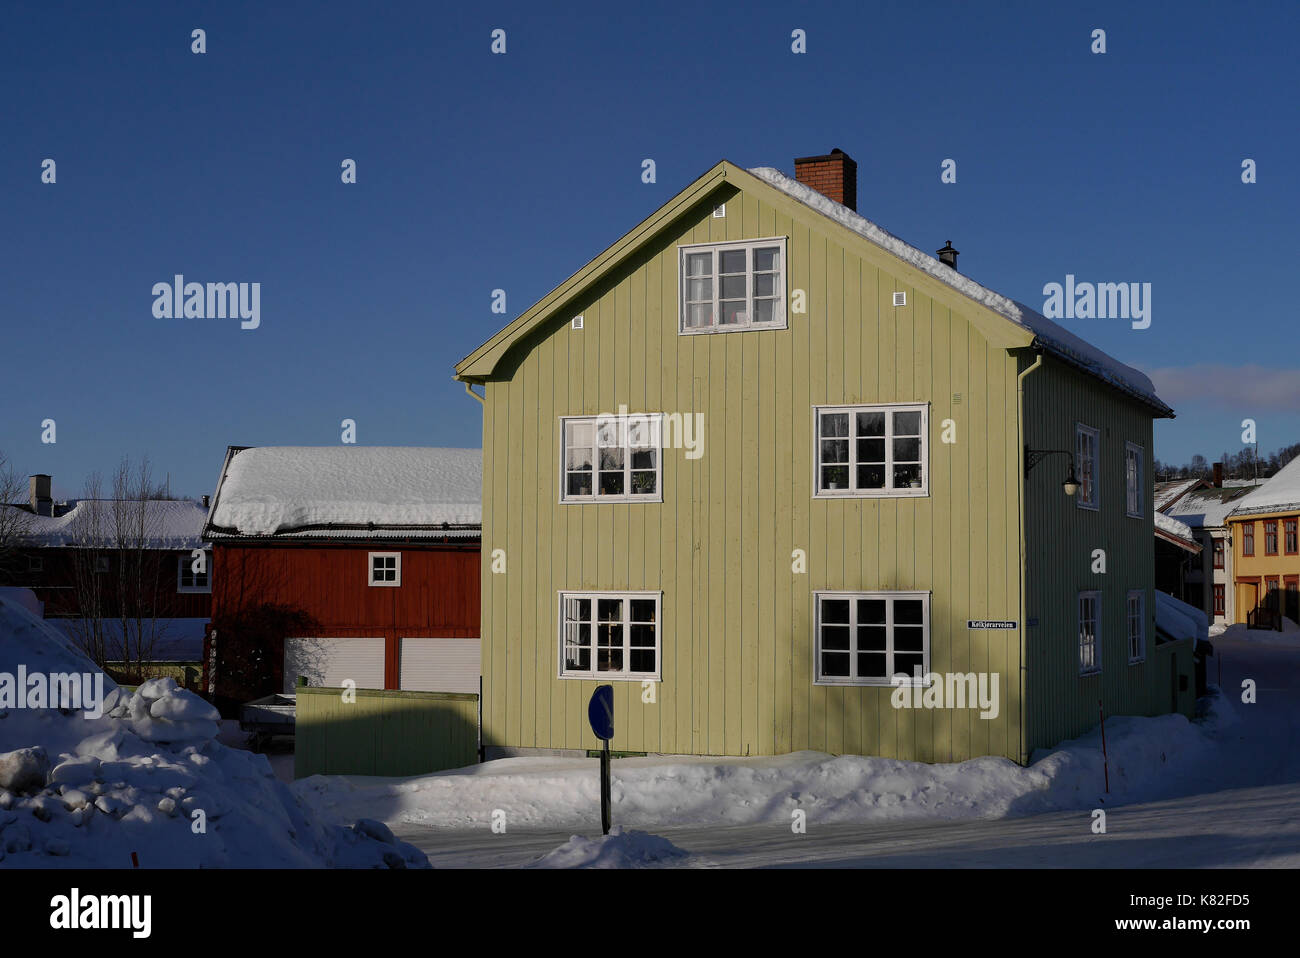 Old, historic part of the city of Röros in Norway. - Stock Image